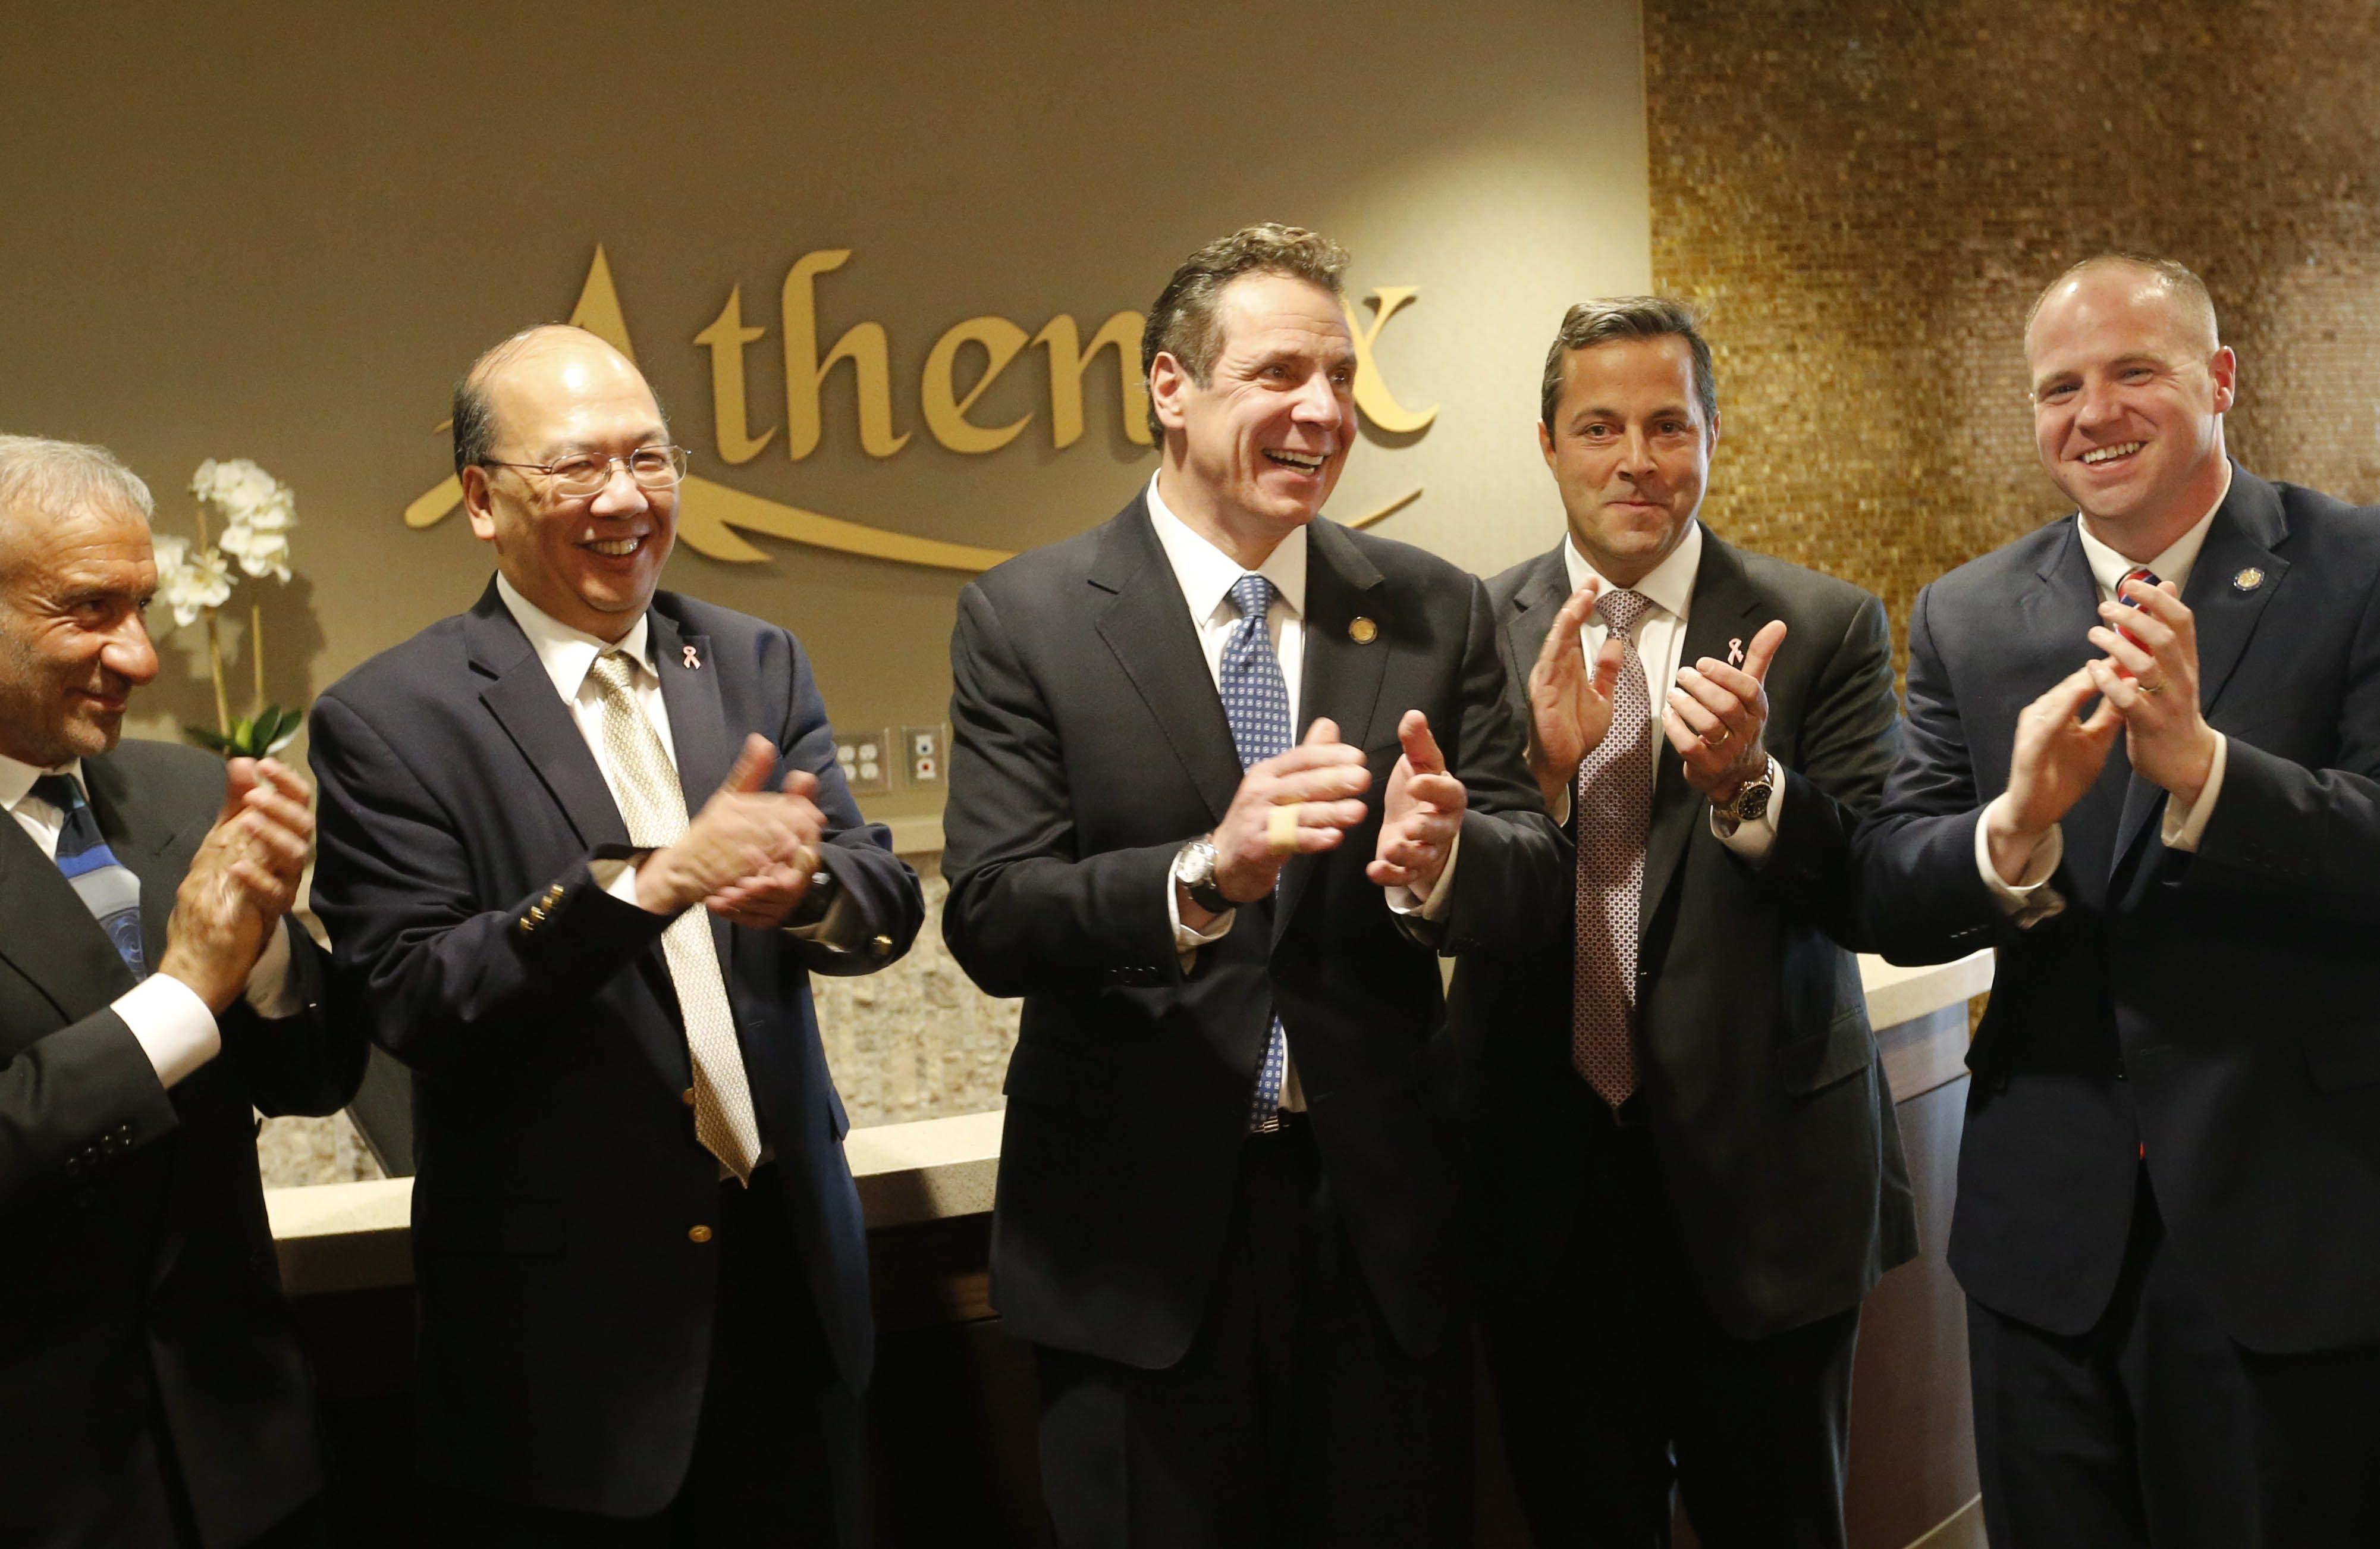 From left, Alain E. Kaloyeros, CEO of SUNY Polytechnic Institute, Athenex CEO Johnson Y. N. Lau, Gov. Cuomo, Athenex COO Flint Besecker and State Sen. Tim Kennedy applaud after a ribbon-cutting to mark the opening of the new Athenex facility at Conventus in Buffalo, Thursday, Feb. 11, 2016. (Derek Gee/Buffalo News)